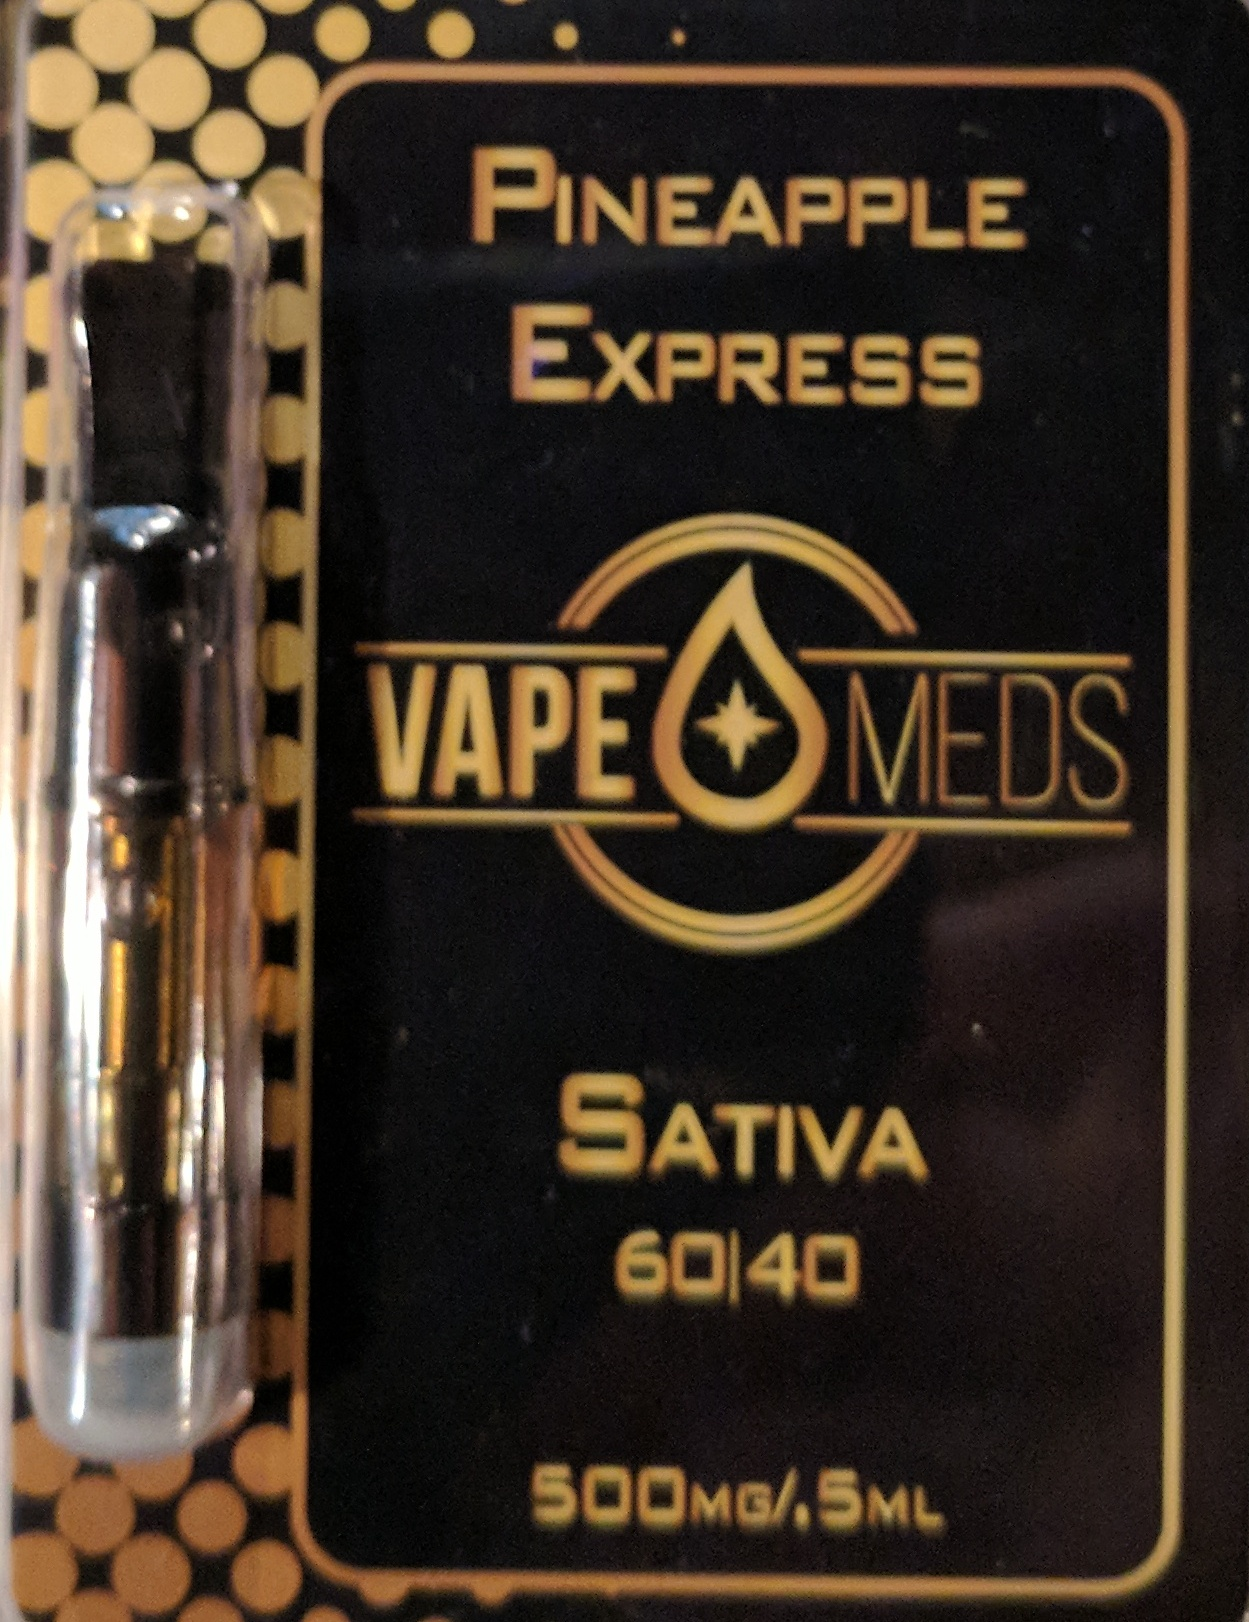 Vape Meds - Pineapples Express (FREE) Product image